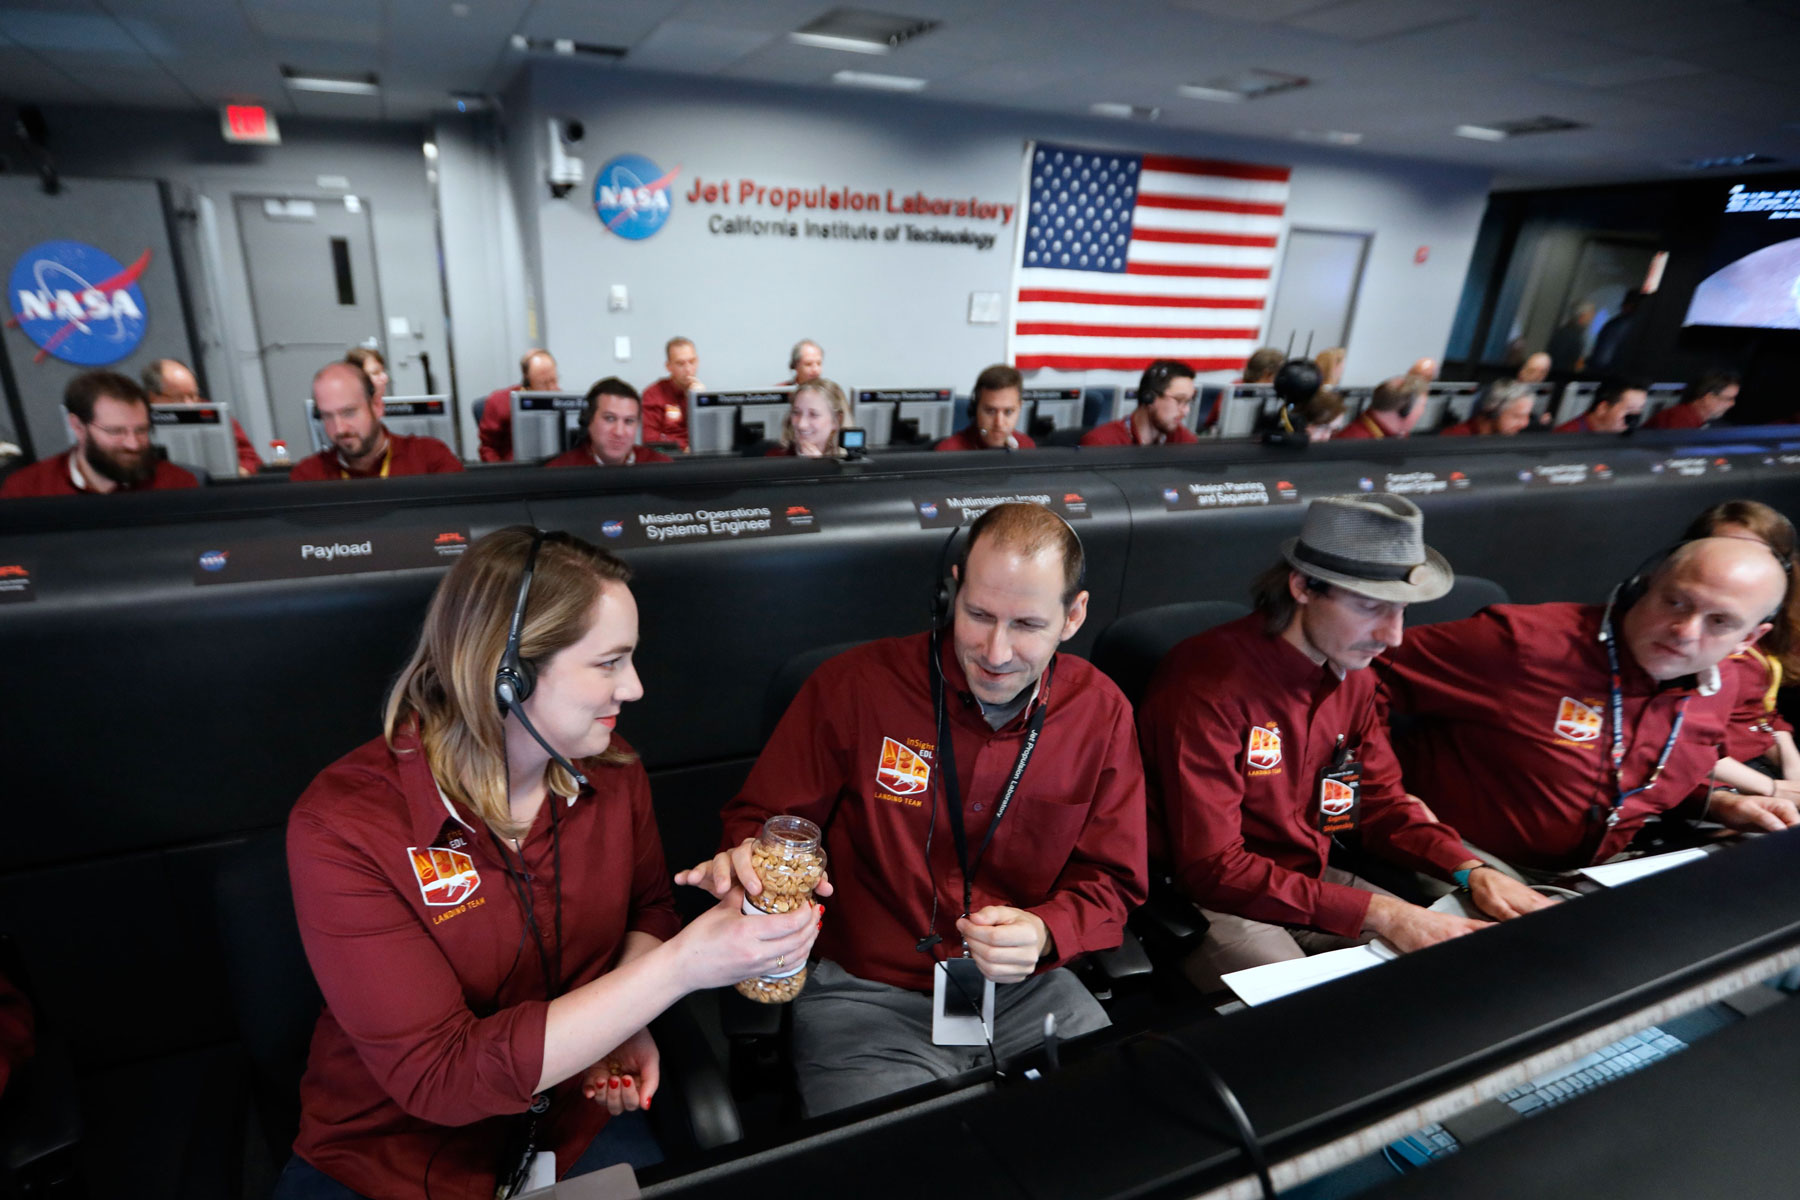 NASA engineers share peanuts as a good luck tradition